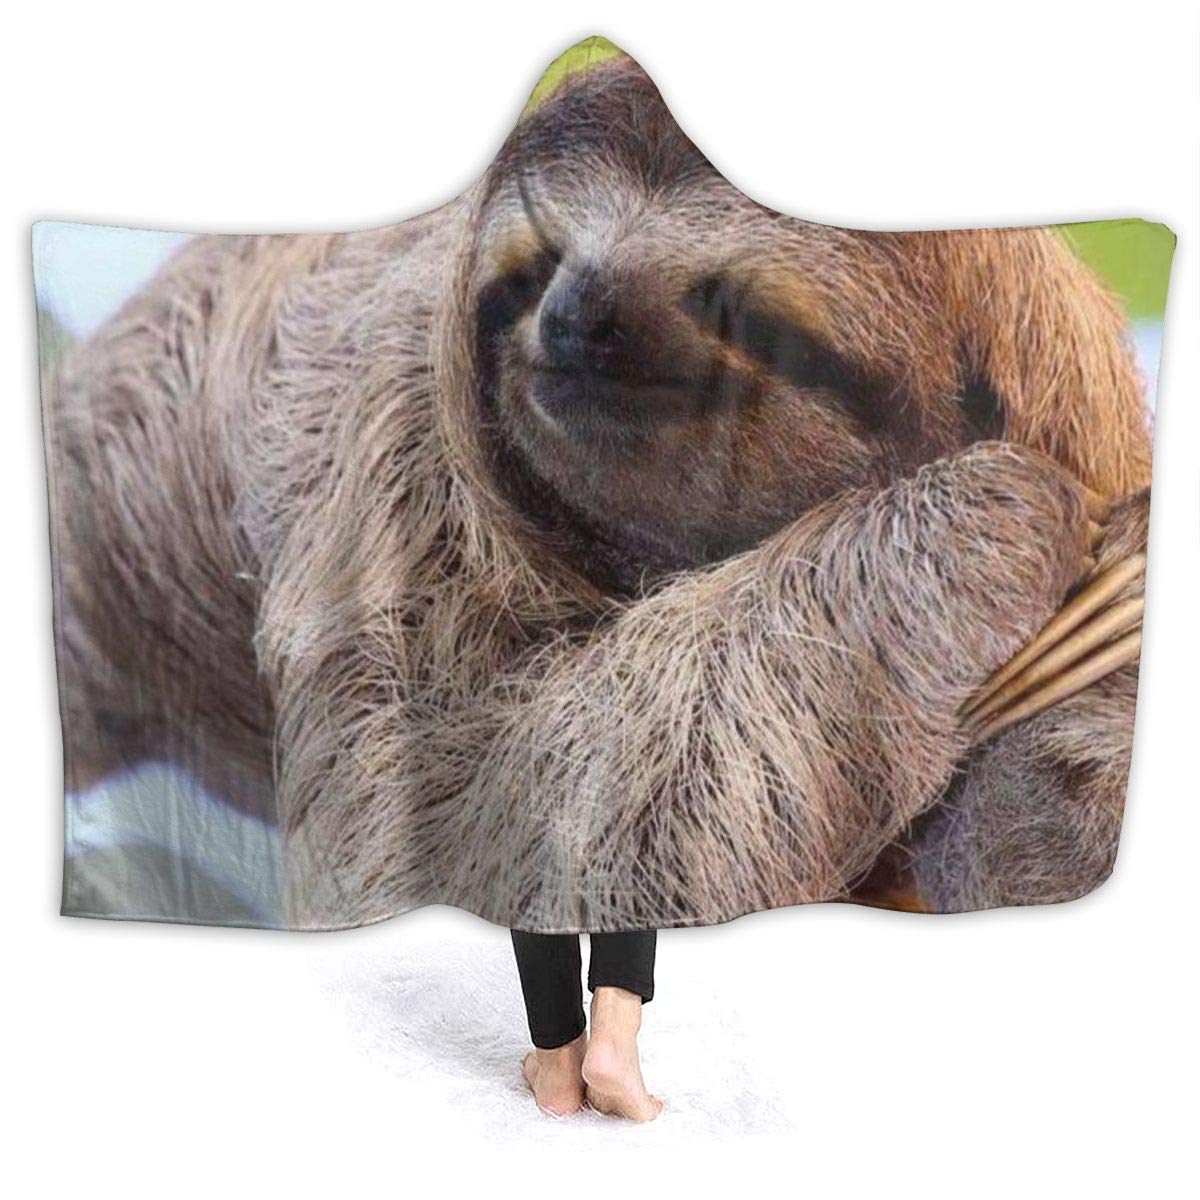 Funny Sloth Hooded Blanket Throw Wearable Cuddle,Super Soft Flannel,Mens,Womens,Kids by Huhuhu